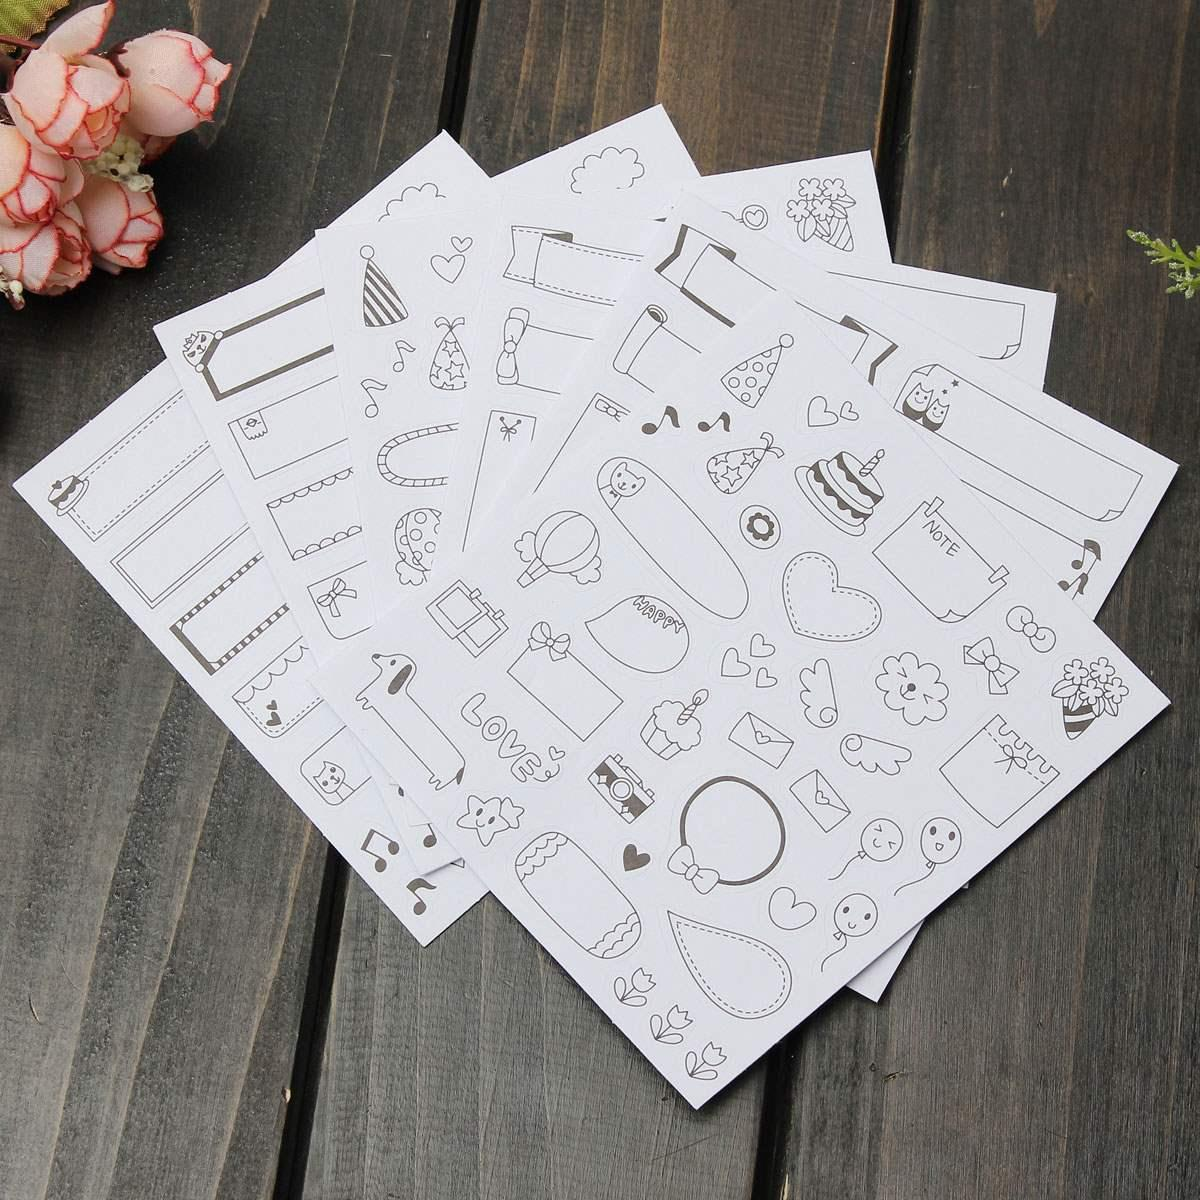 Scrapbook paper and stickers - 6pcs Set Low Price Best Promotion Cute Paper Stickers For Scrapbook Paper Sheets Calendar Photo